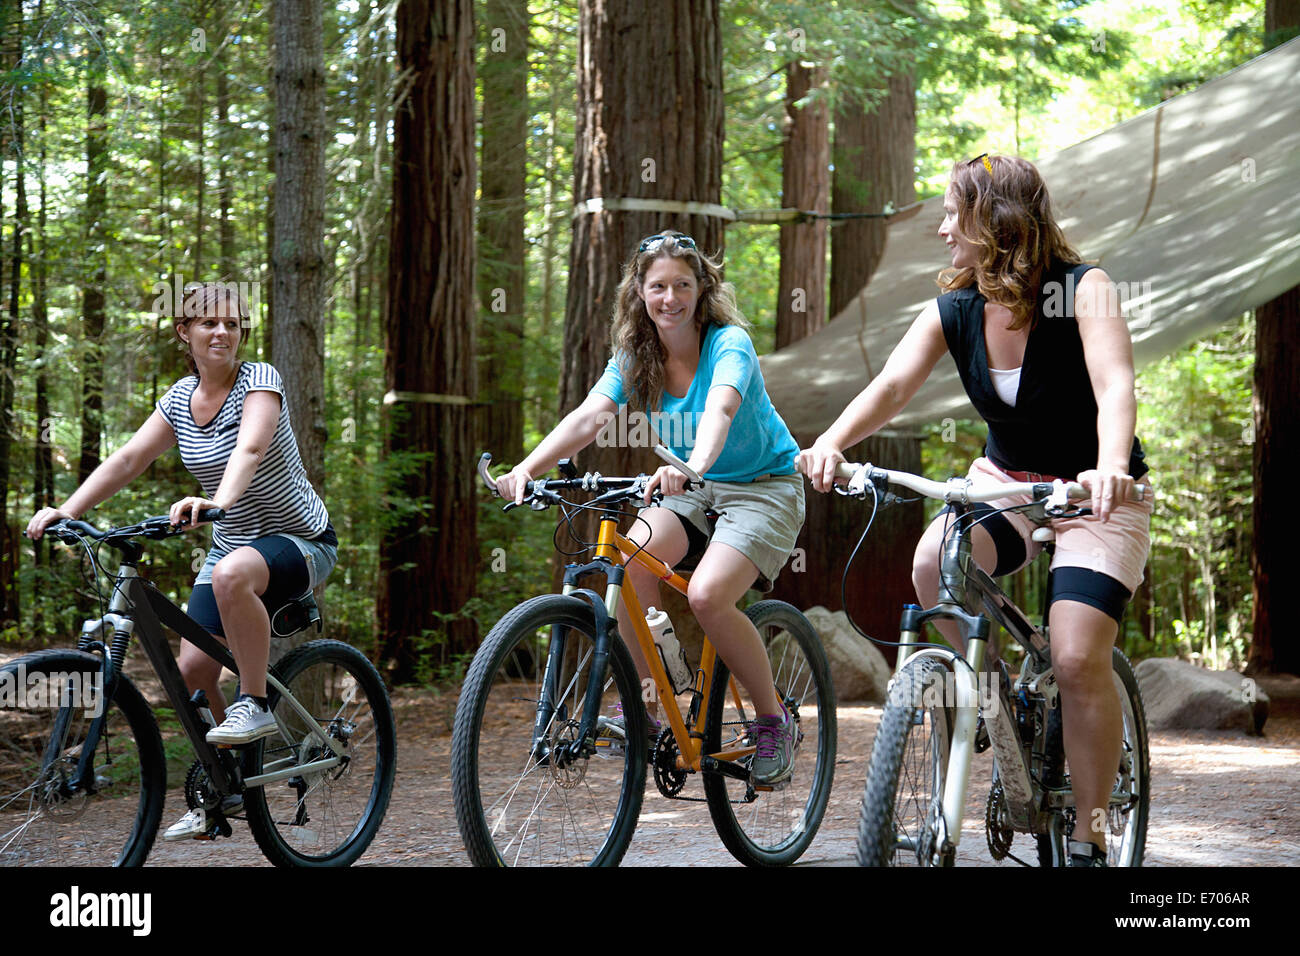 Three women mountain bikers cycling in forest - Stock Image